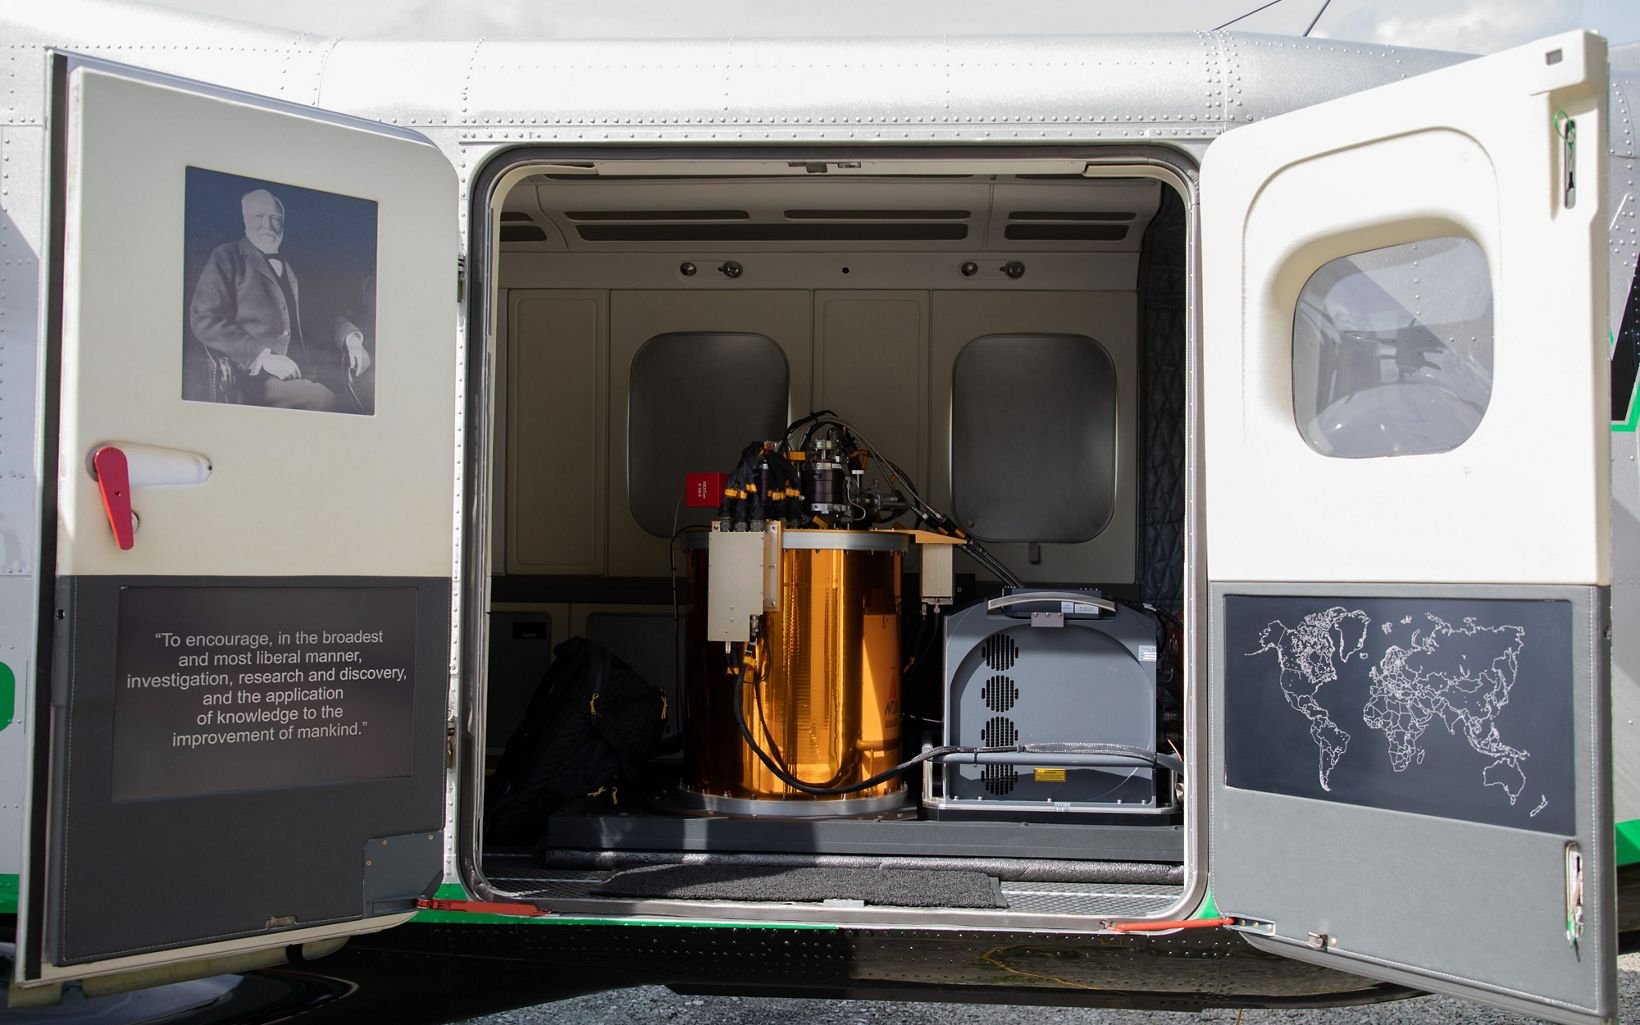 Inside the GAO aircraft. The aircraft's state-of-the-art technologies have the capacity to asses coral reefs at geographic scales, spatial resolutions and accuracies.